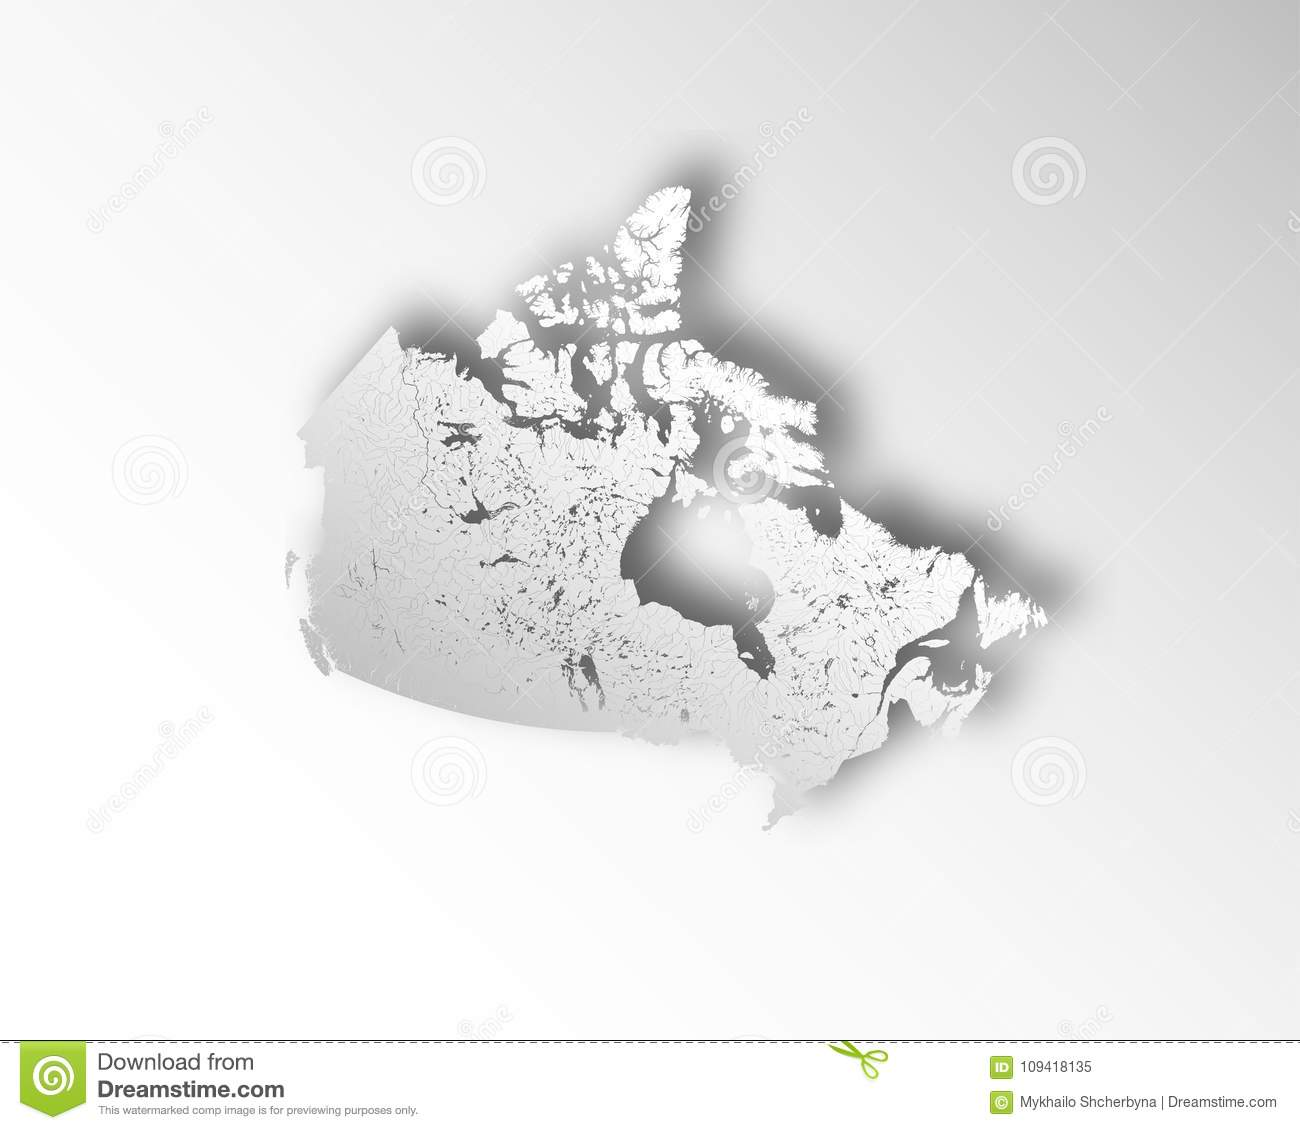 Map Of Canada With Lakes.Map Of Canada With Paper Cut Effect Rivers And Lakes Are Shown